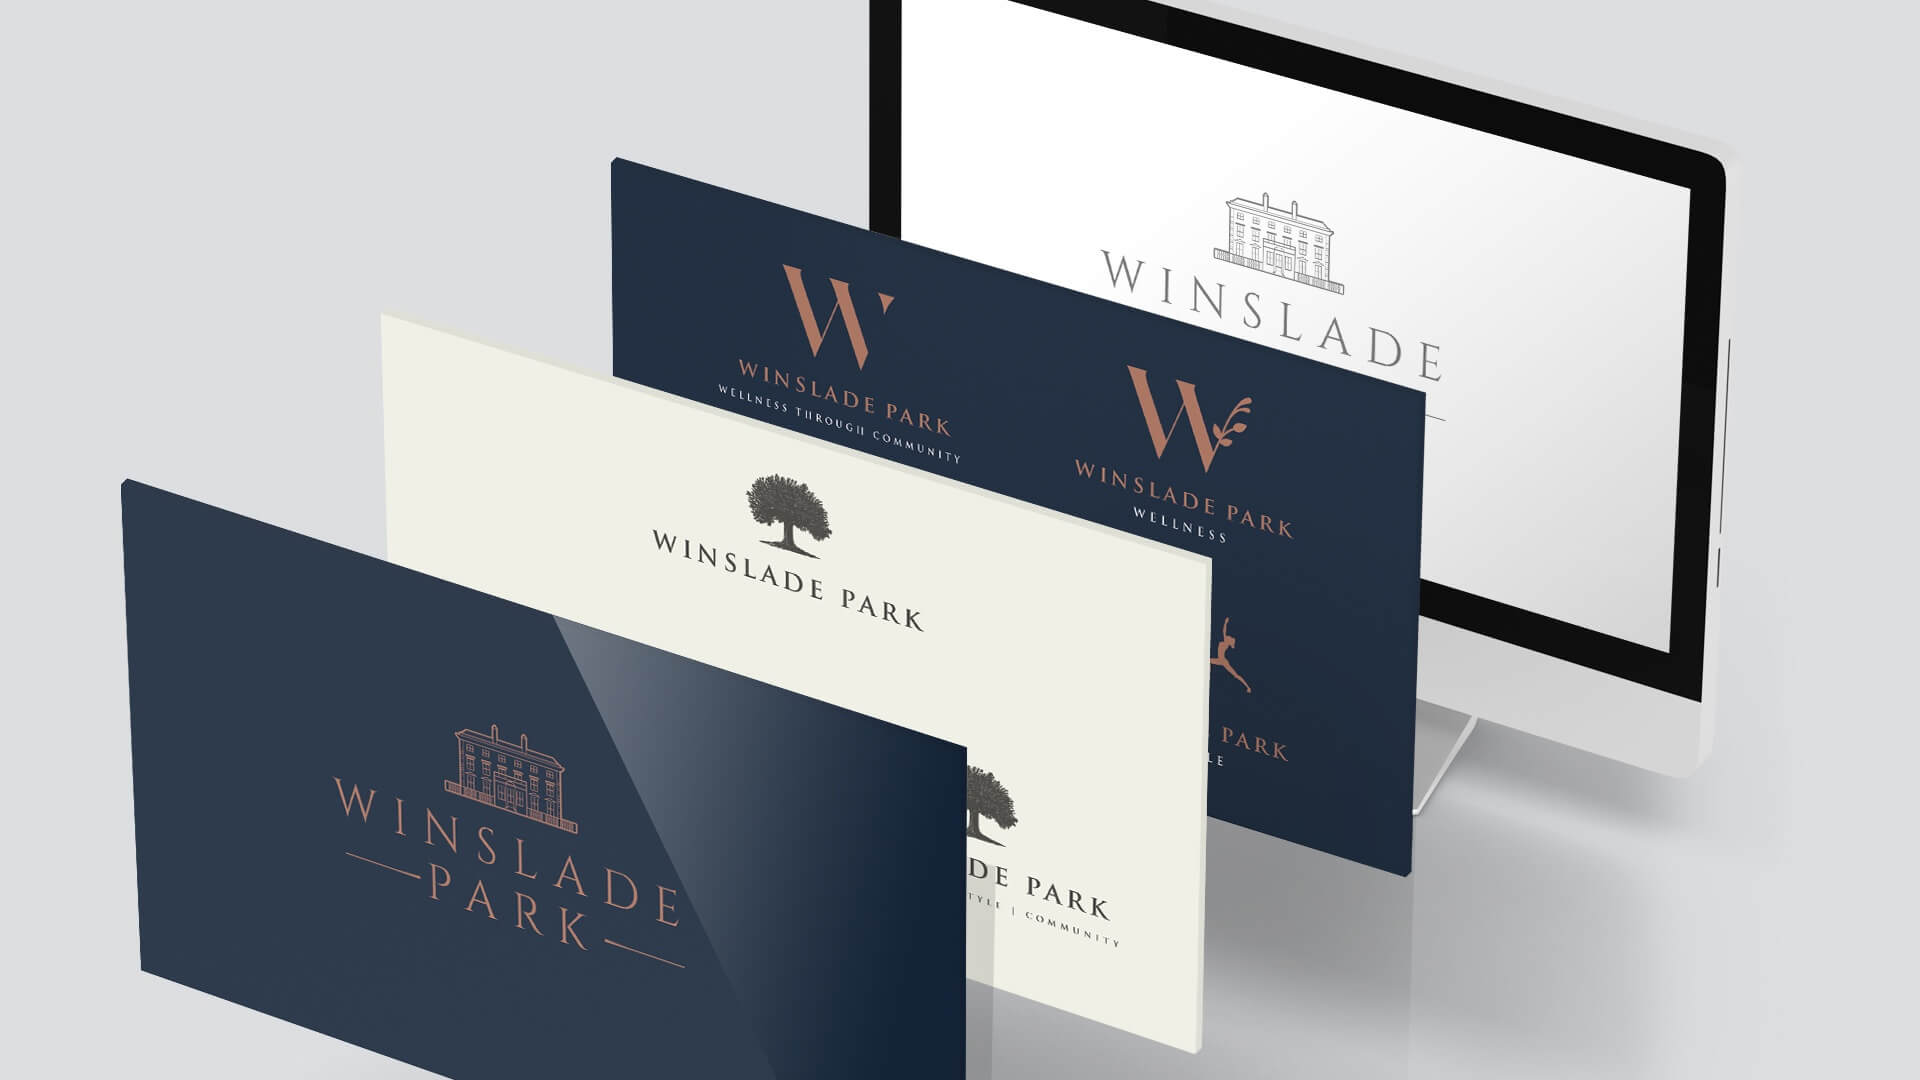 Winslade website designs